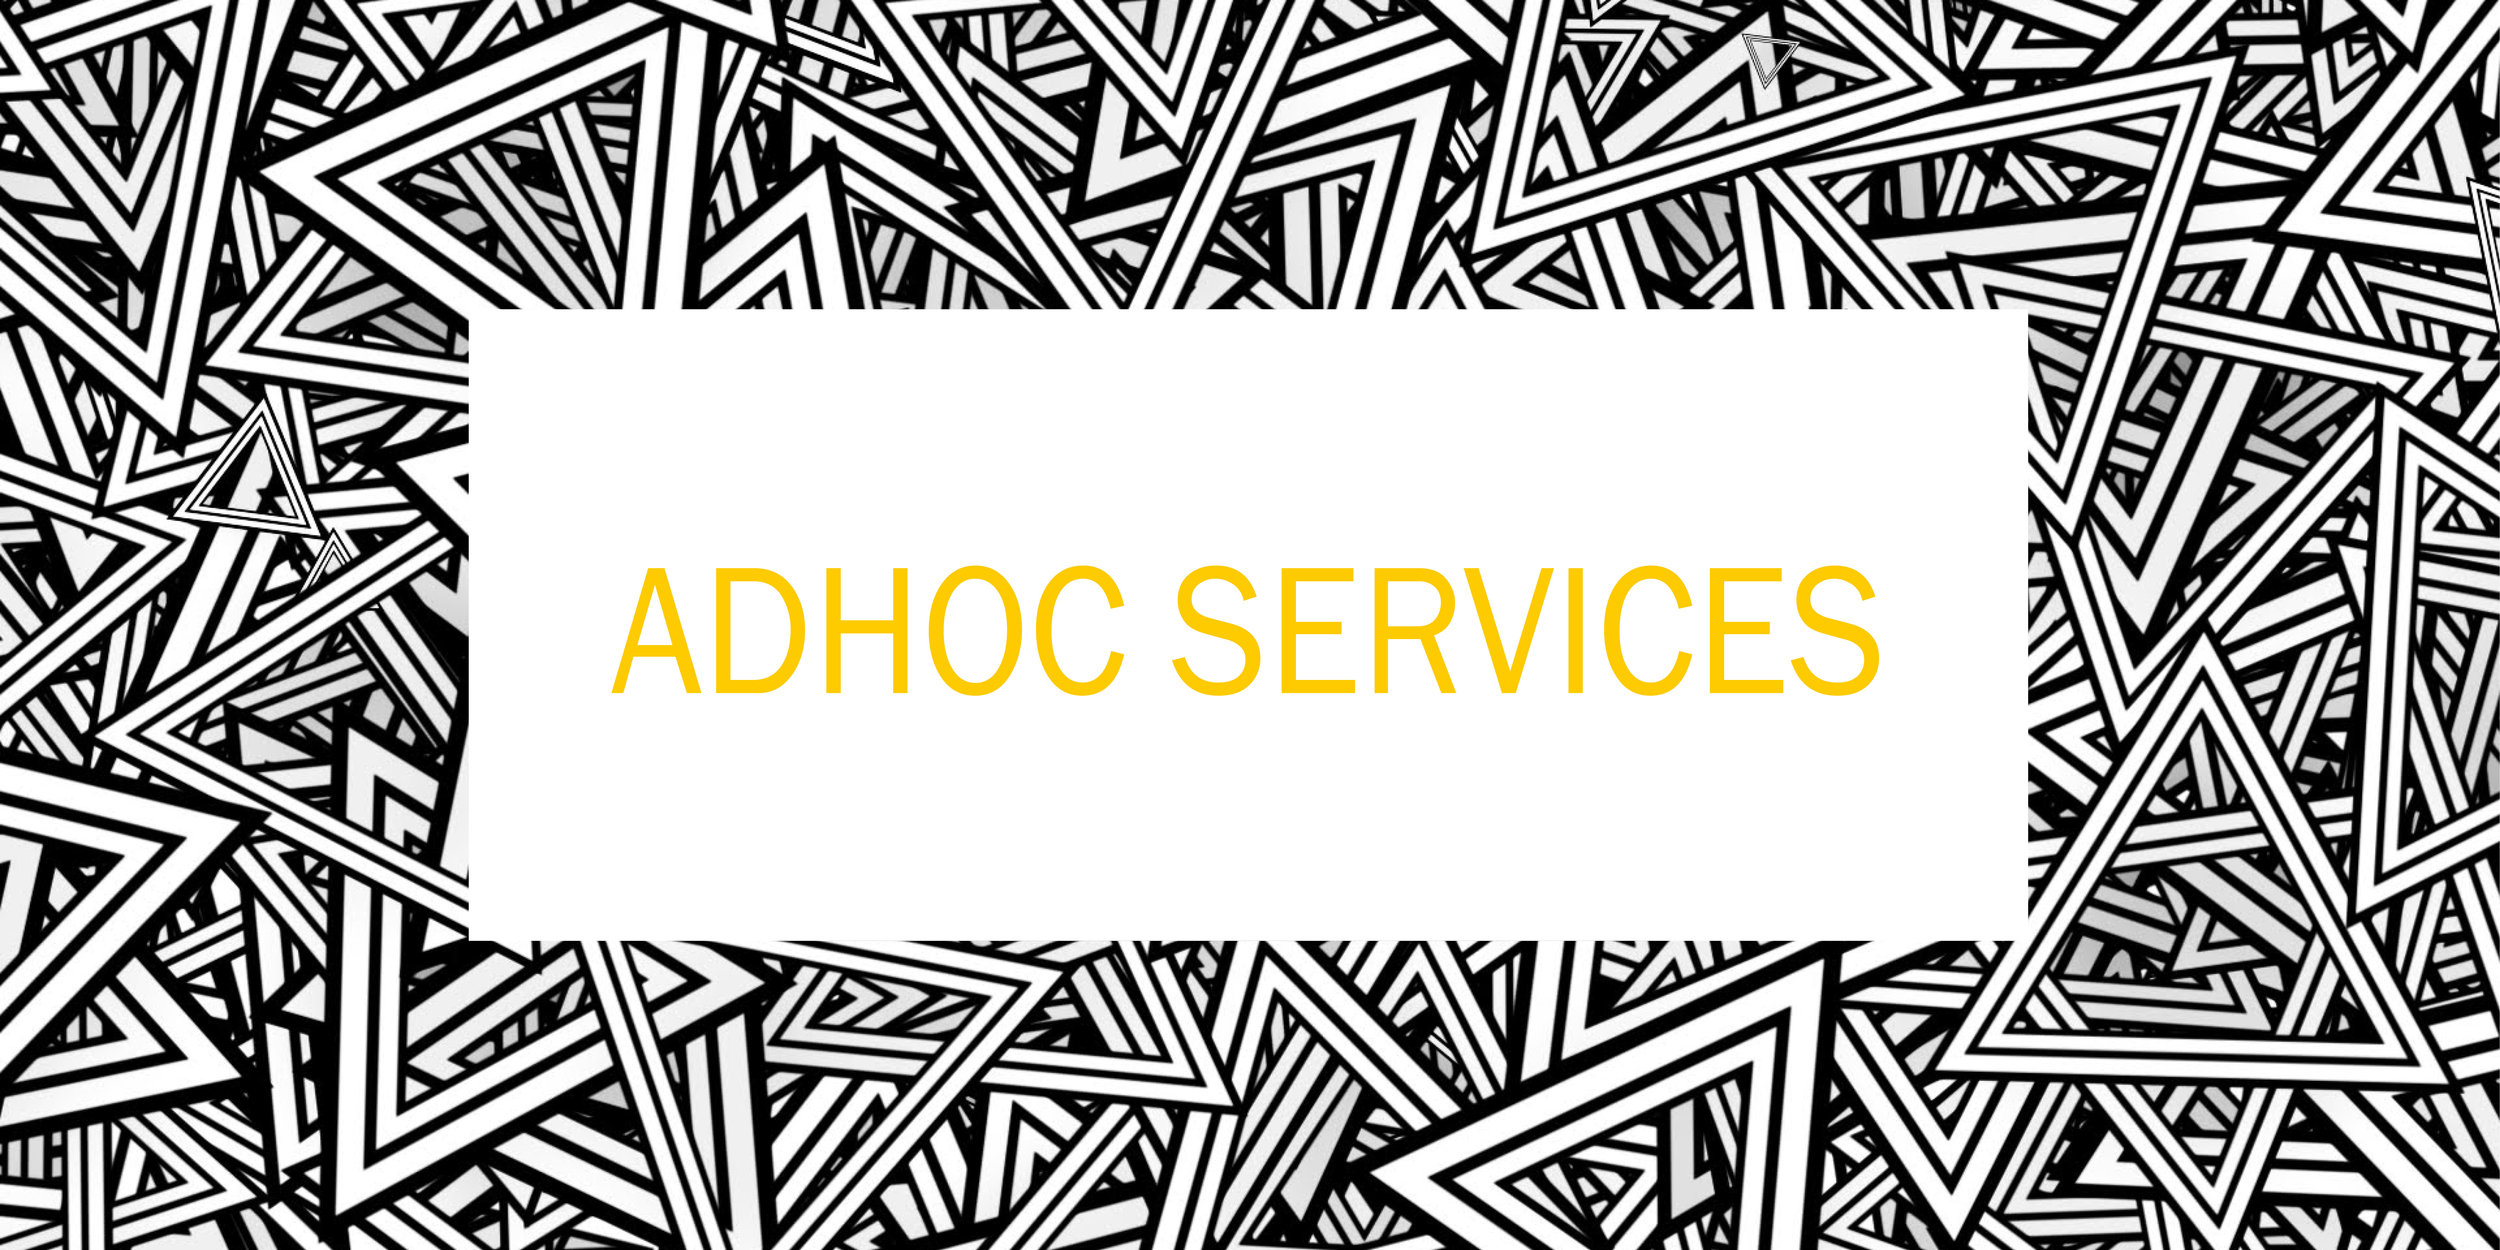 SERVICES AVAILABLE ON AN ADHOC BASIS - R650.00 per hourProject and Event Management, Writing and Editing, Social Media, Content Creation, Political Consulting, Speech Writing, Media Liaison, Communications.